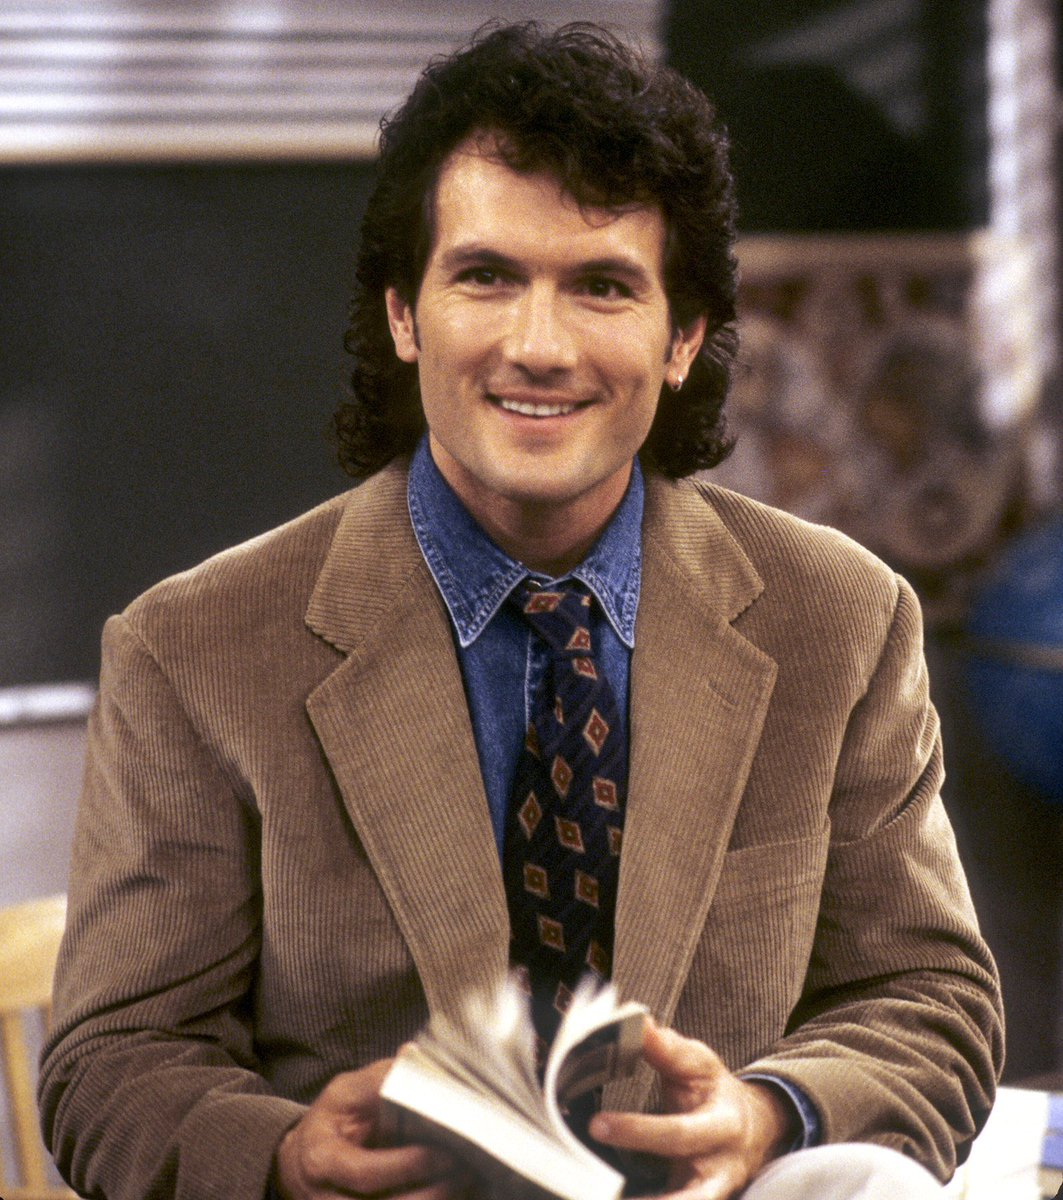 I don't care what your sexual orientation is, Mr. Turner from Boy Meets World was it. https://t.co/F4MorryvRp